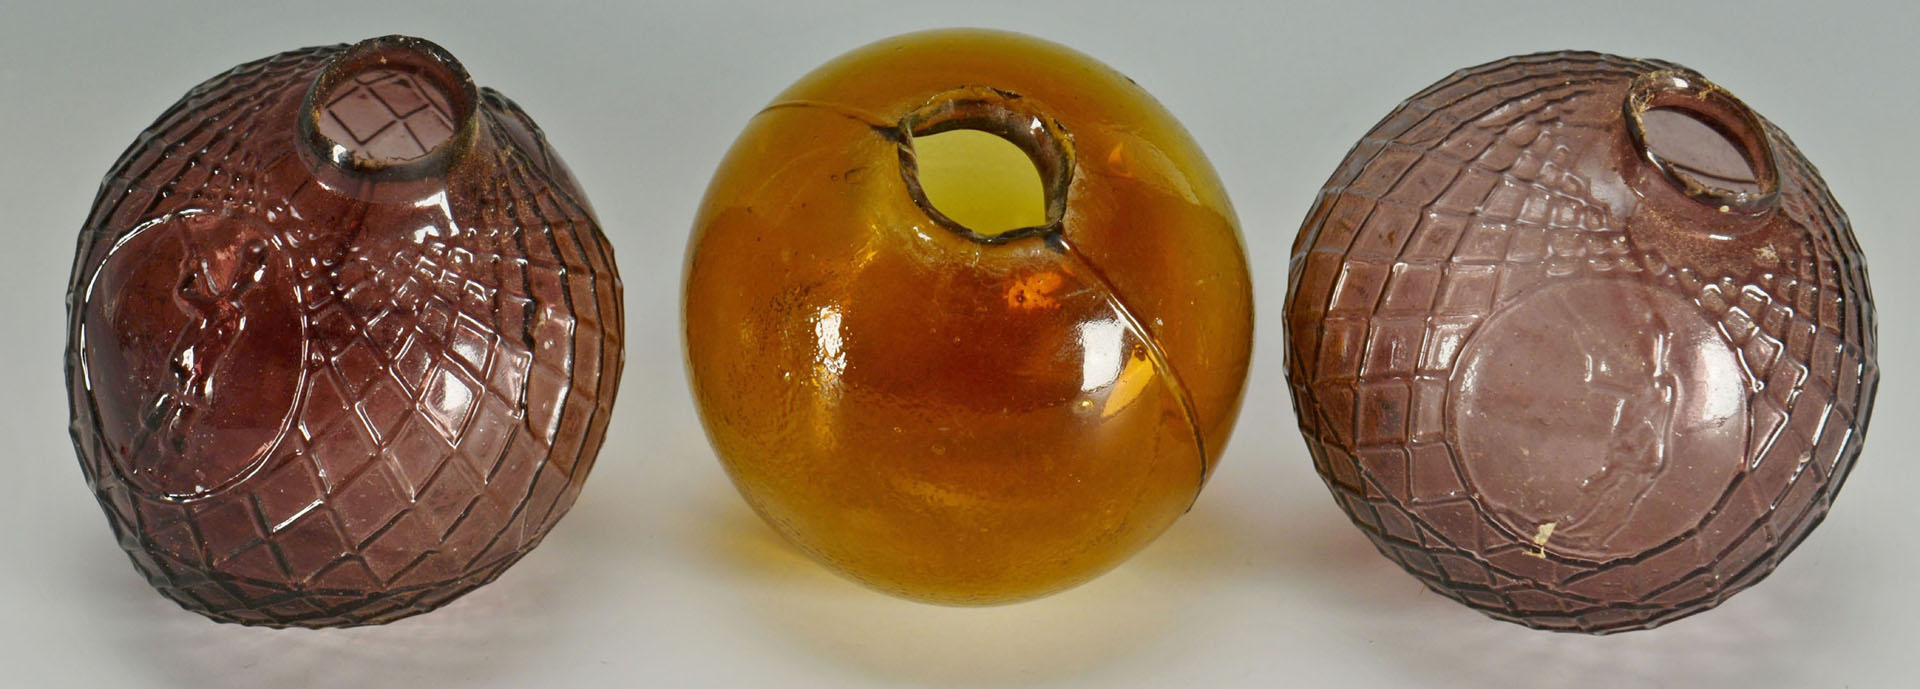 3 Early Glass Target Balls, Amethyst & Amber